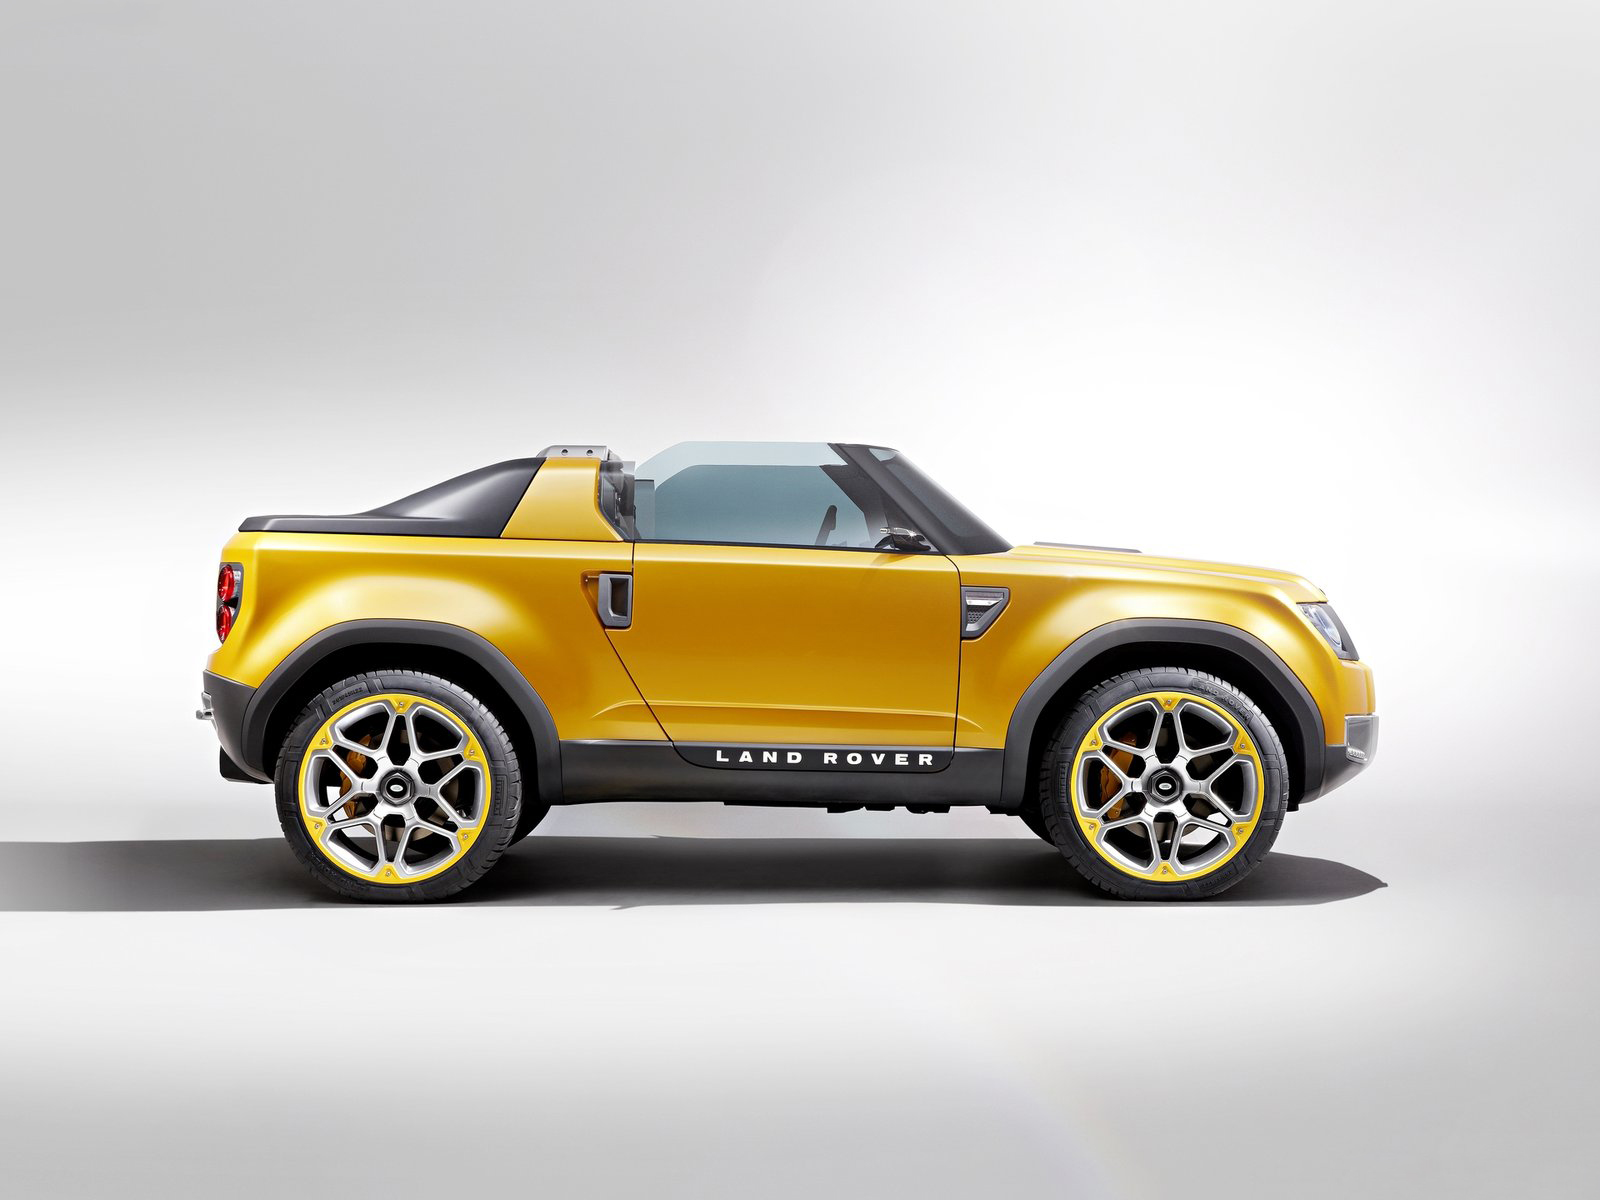 2011 land rover dc100 concept side 2 1280x960 wallpaper - 2011 Land Rover Dc100 Sport Concept Side View